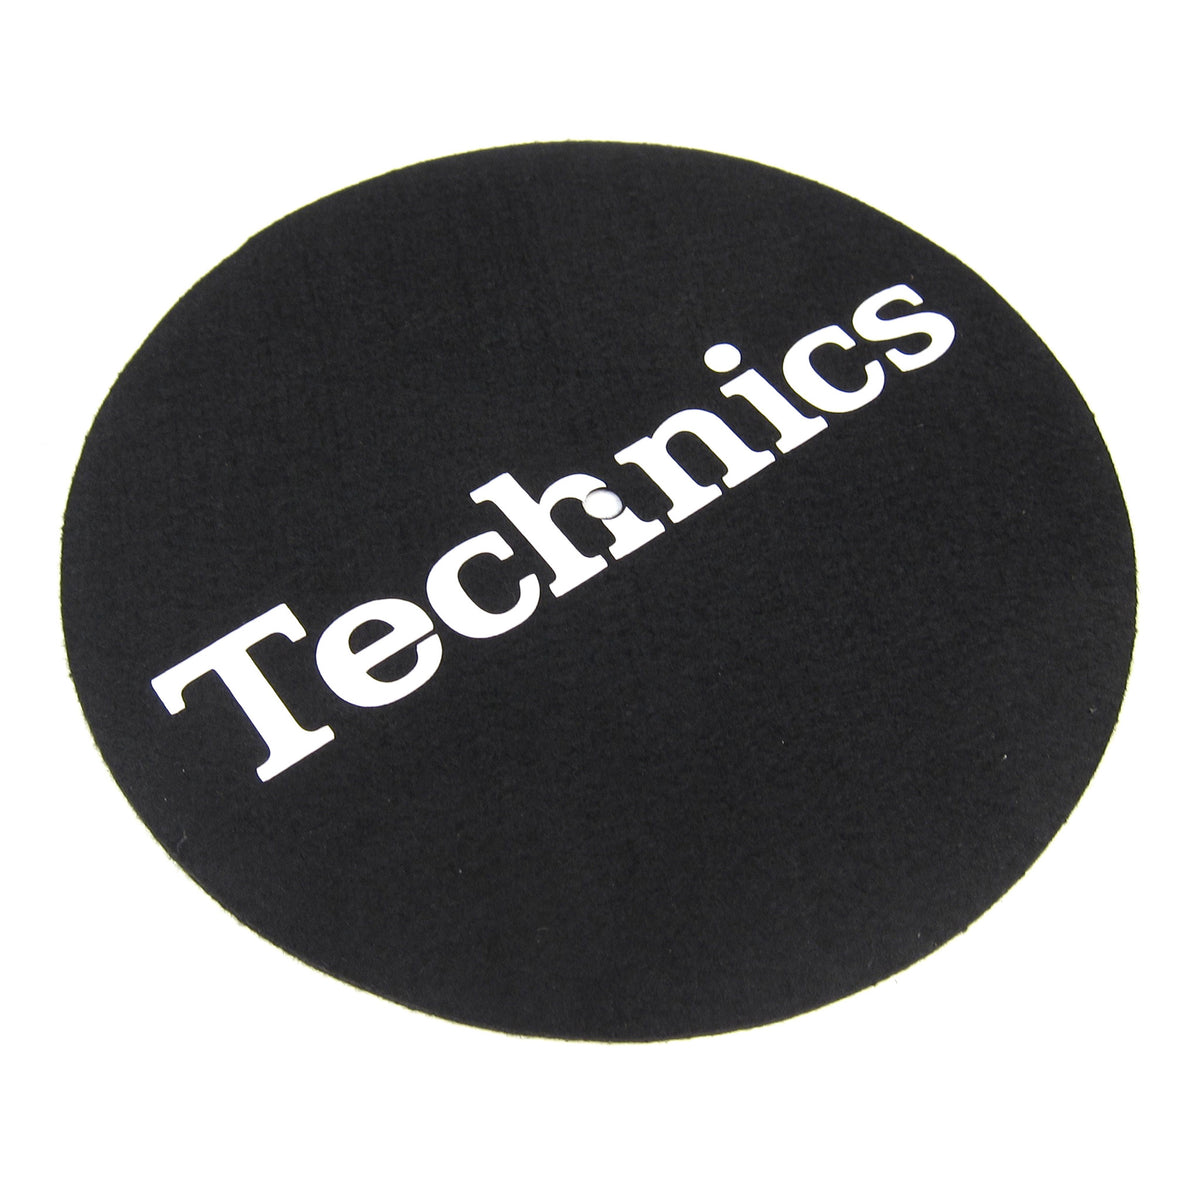 "Technics: 7"" Slipmats (Pair) - Black"